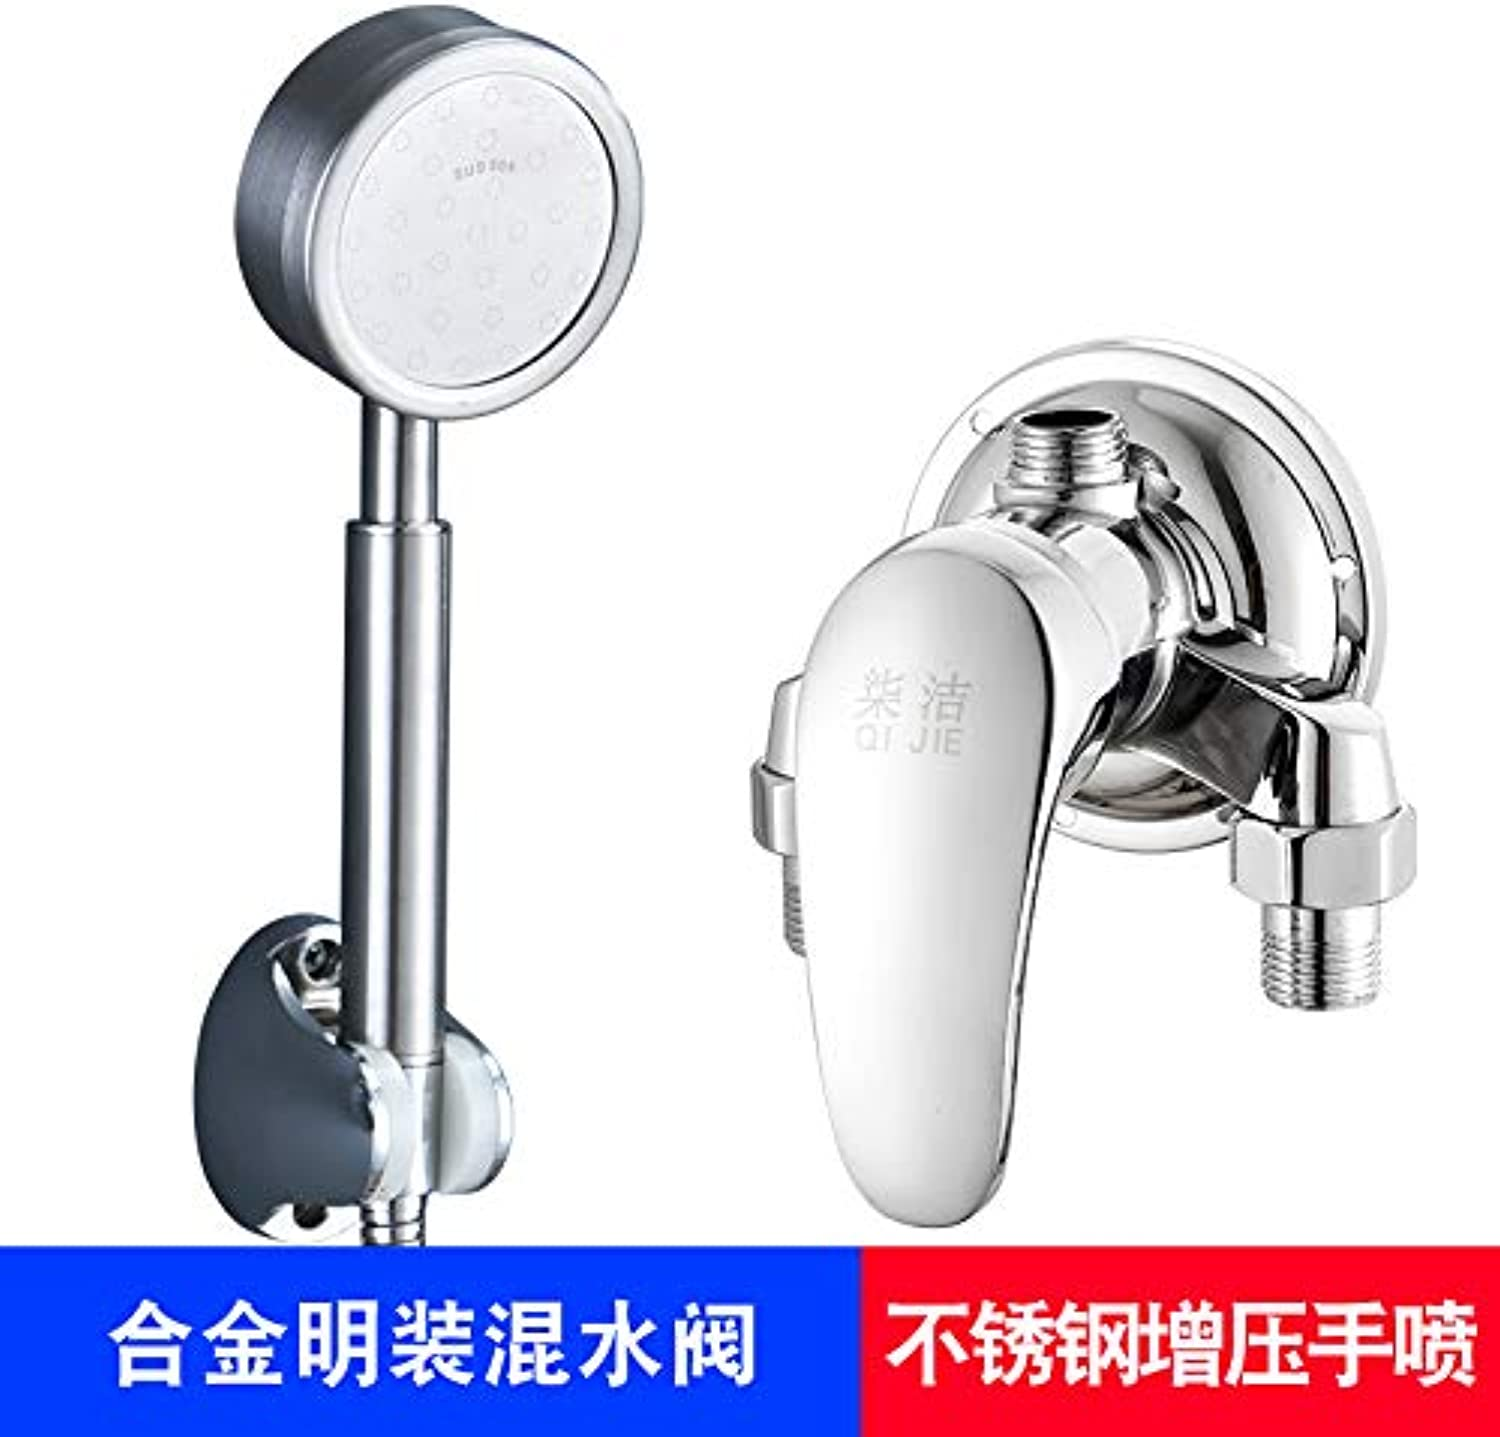 redOOY Mixing valve shower mixing valve shower wall mounted mixing valve switch solar water heater tube faucet shower set, alloy surface mounted faucet D